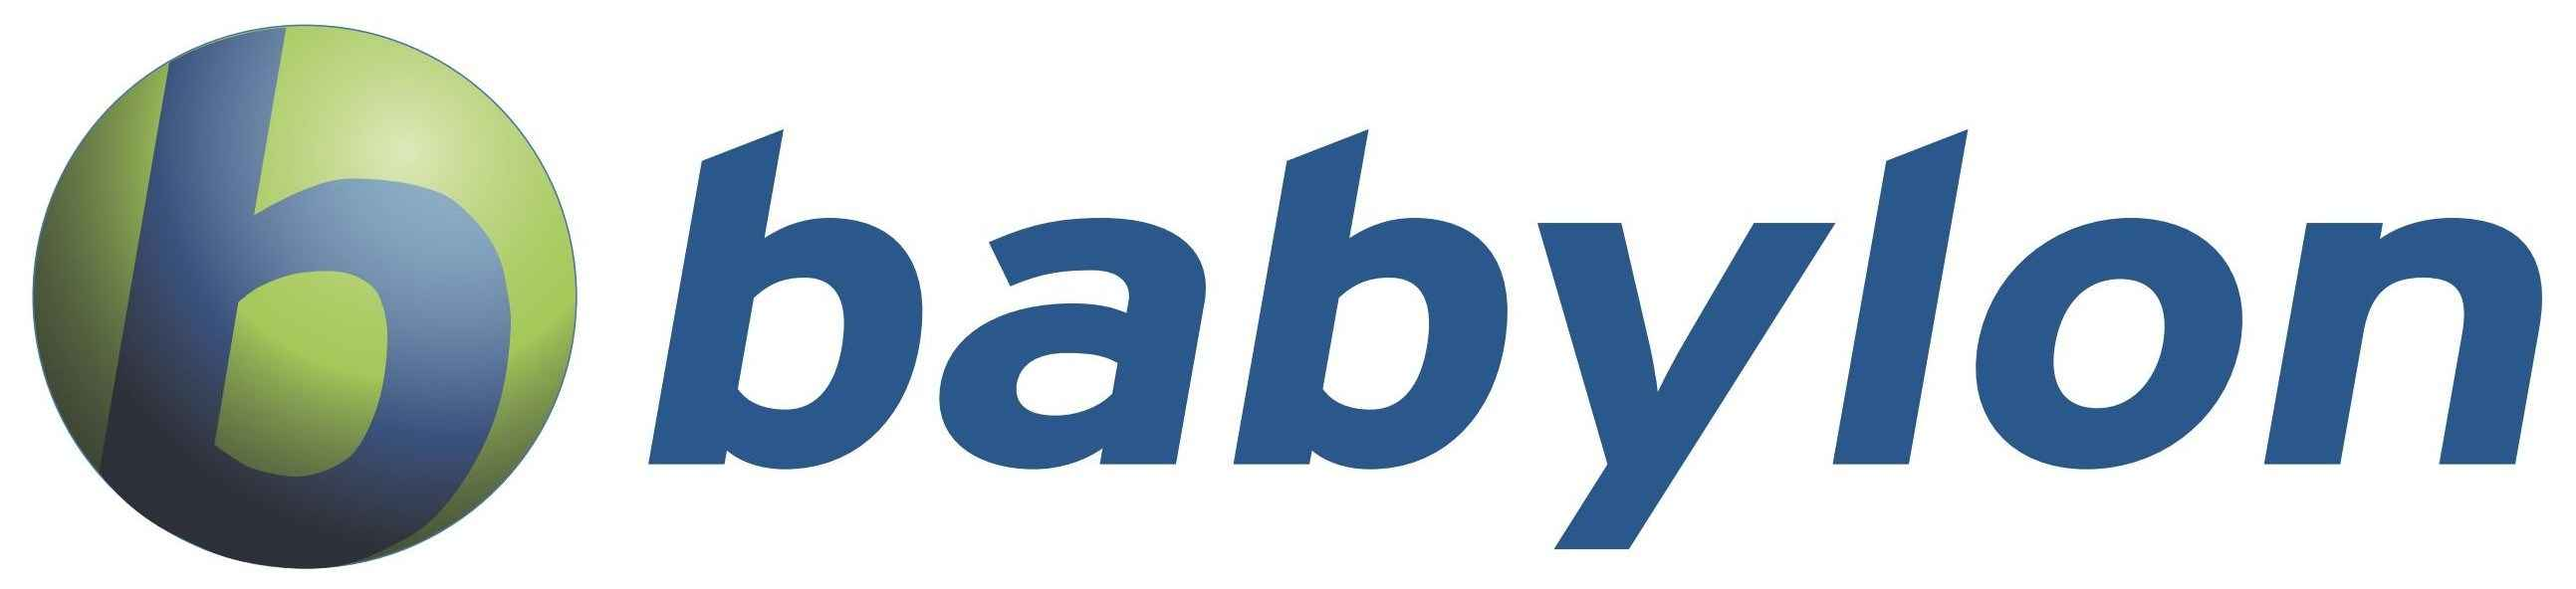 Babylon Logo [EPS File] png